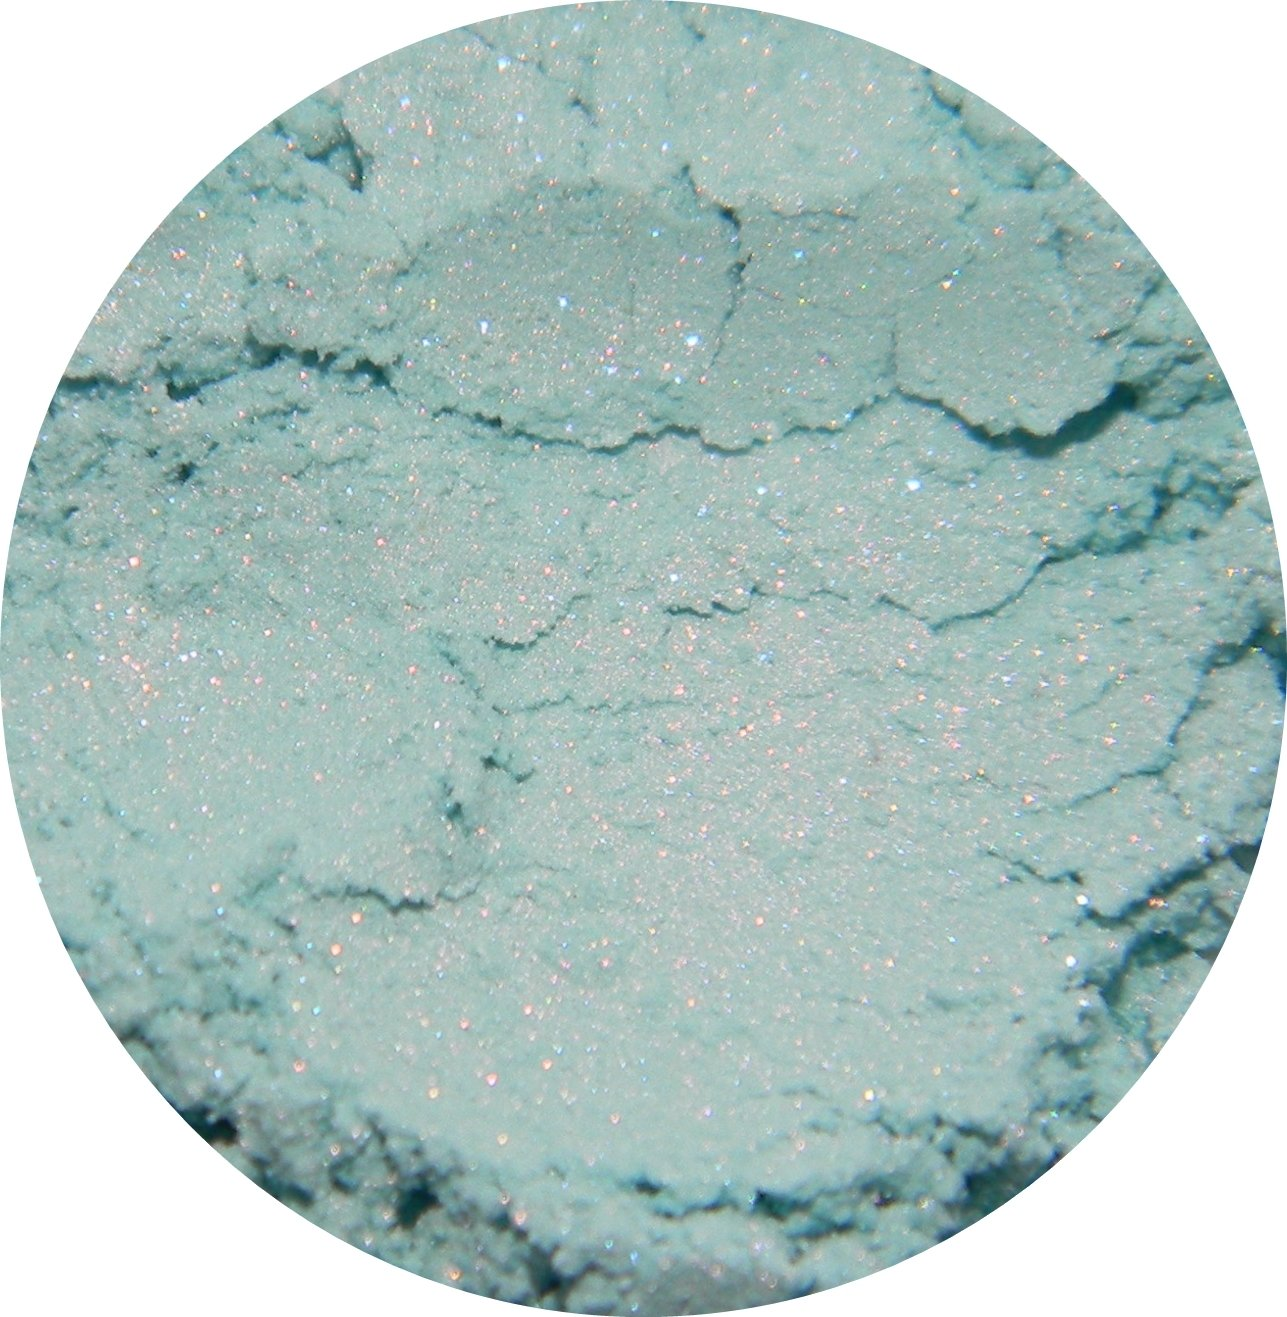 Mystique - Spectral Shift (full size) � Darling Girl Cosmetics